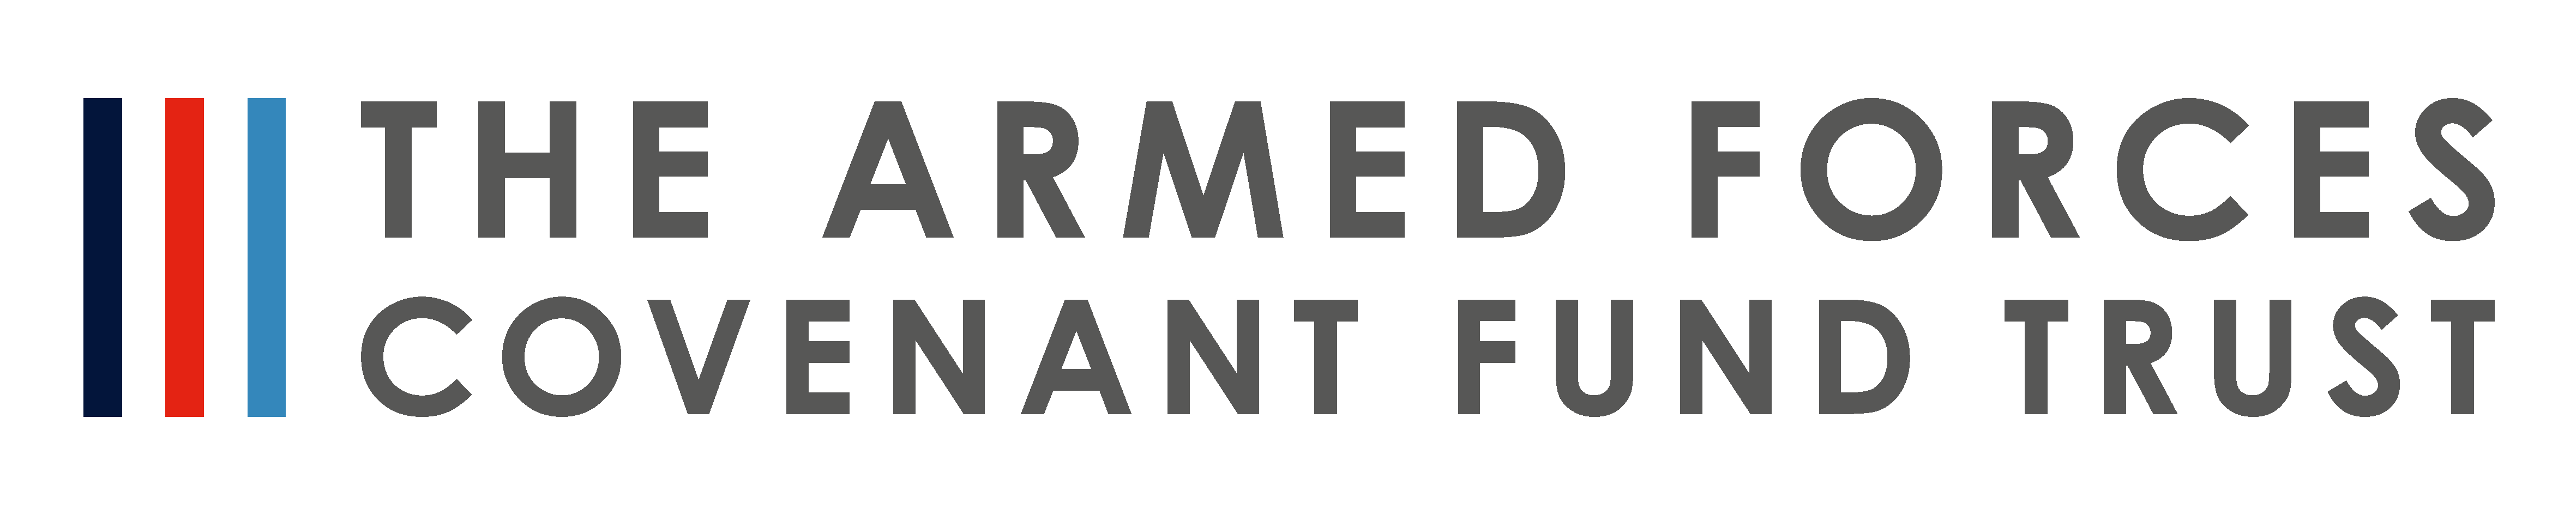 Armed Forces Covenant Fund Trust full colour logo, transparent background